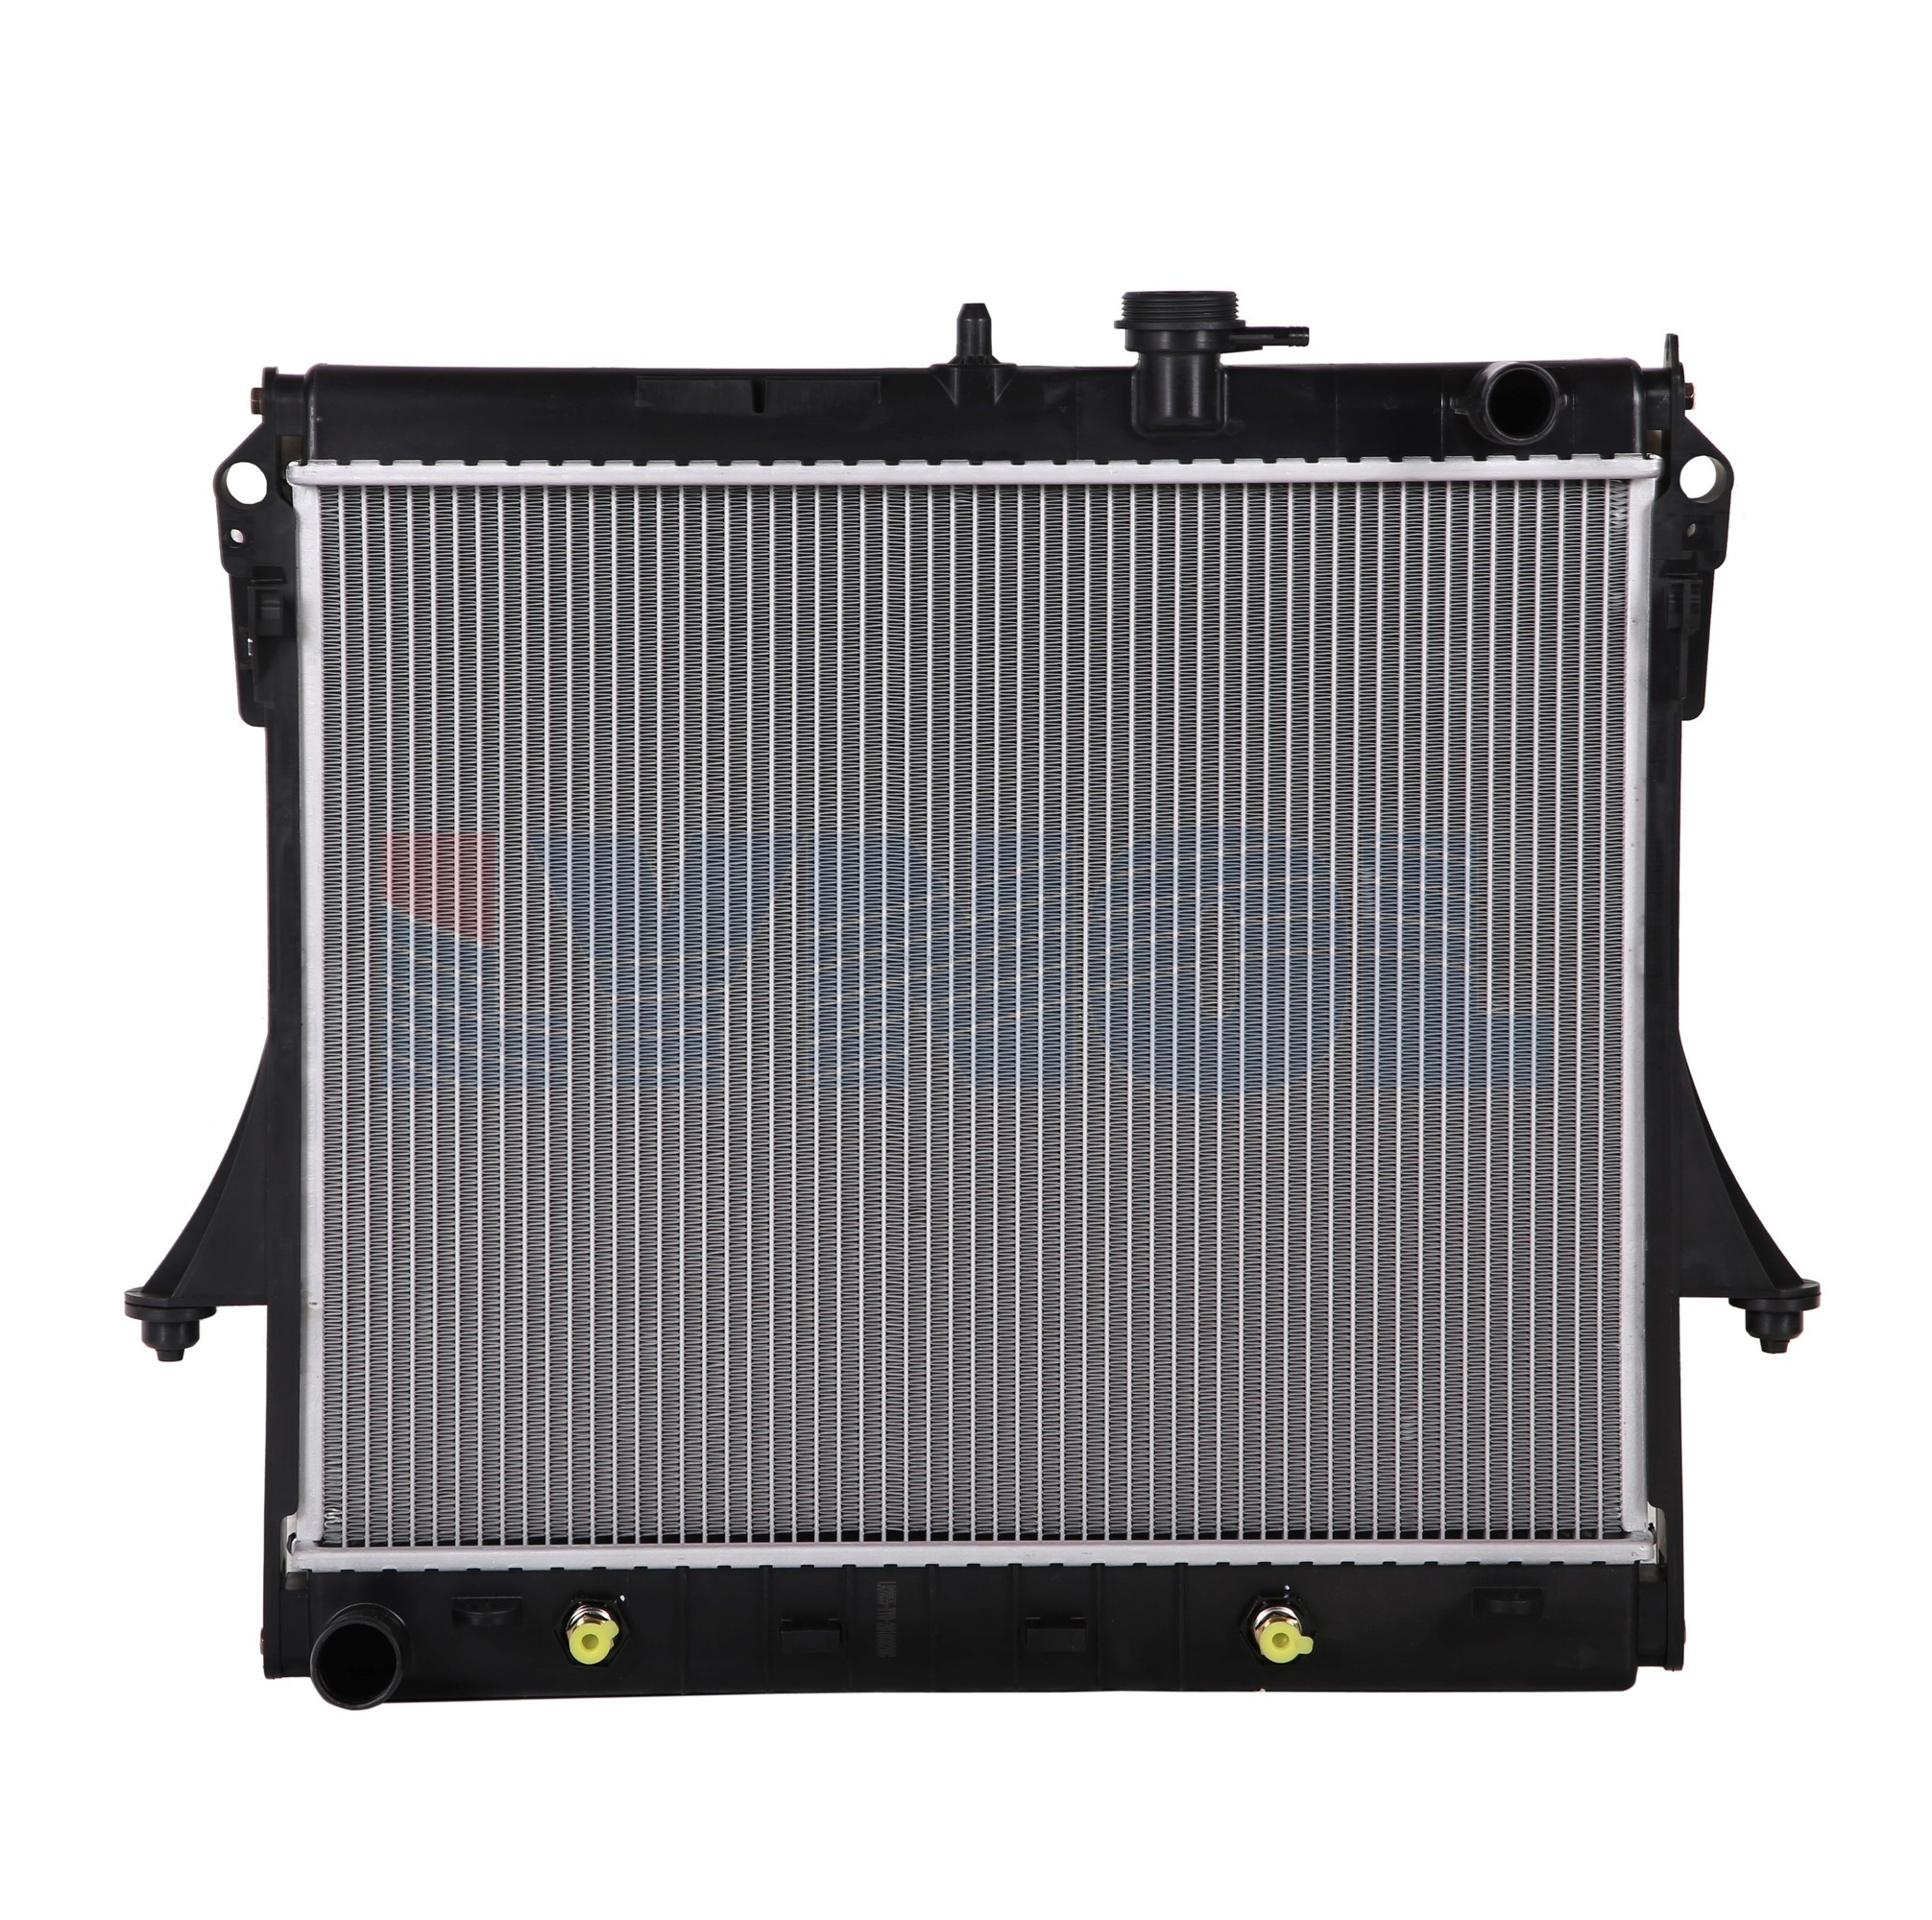 LR2855 -  RADIATOR   - 06-12 Hummer/Chevrolet/GMC H3/H3T/Colorado/Canyon 3.5l/3.7l/5.3l L5/V8